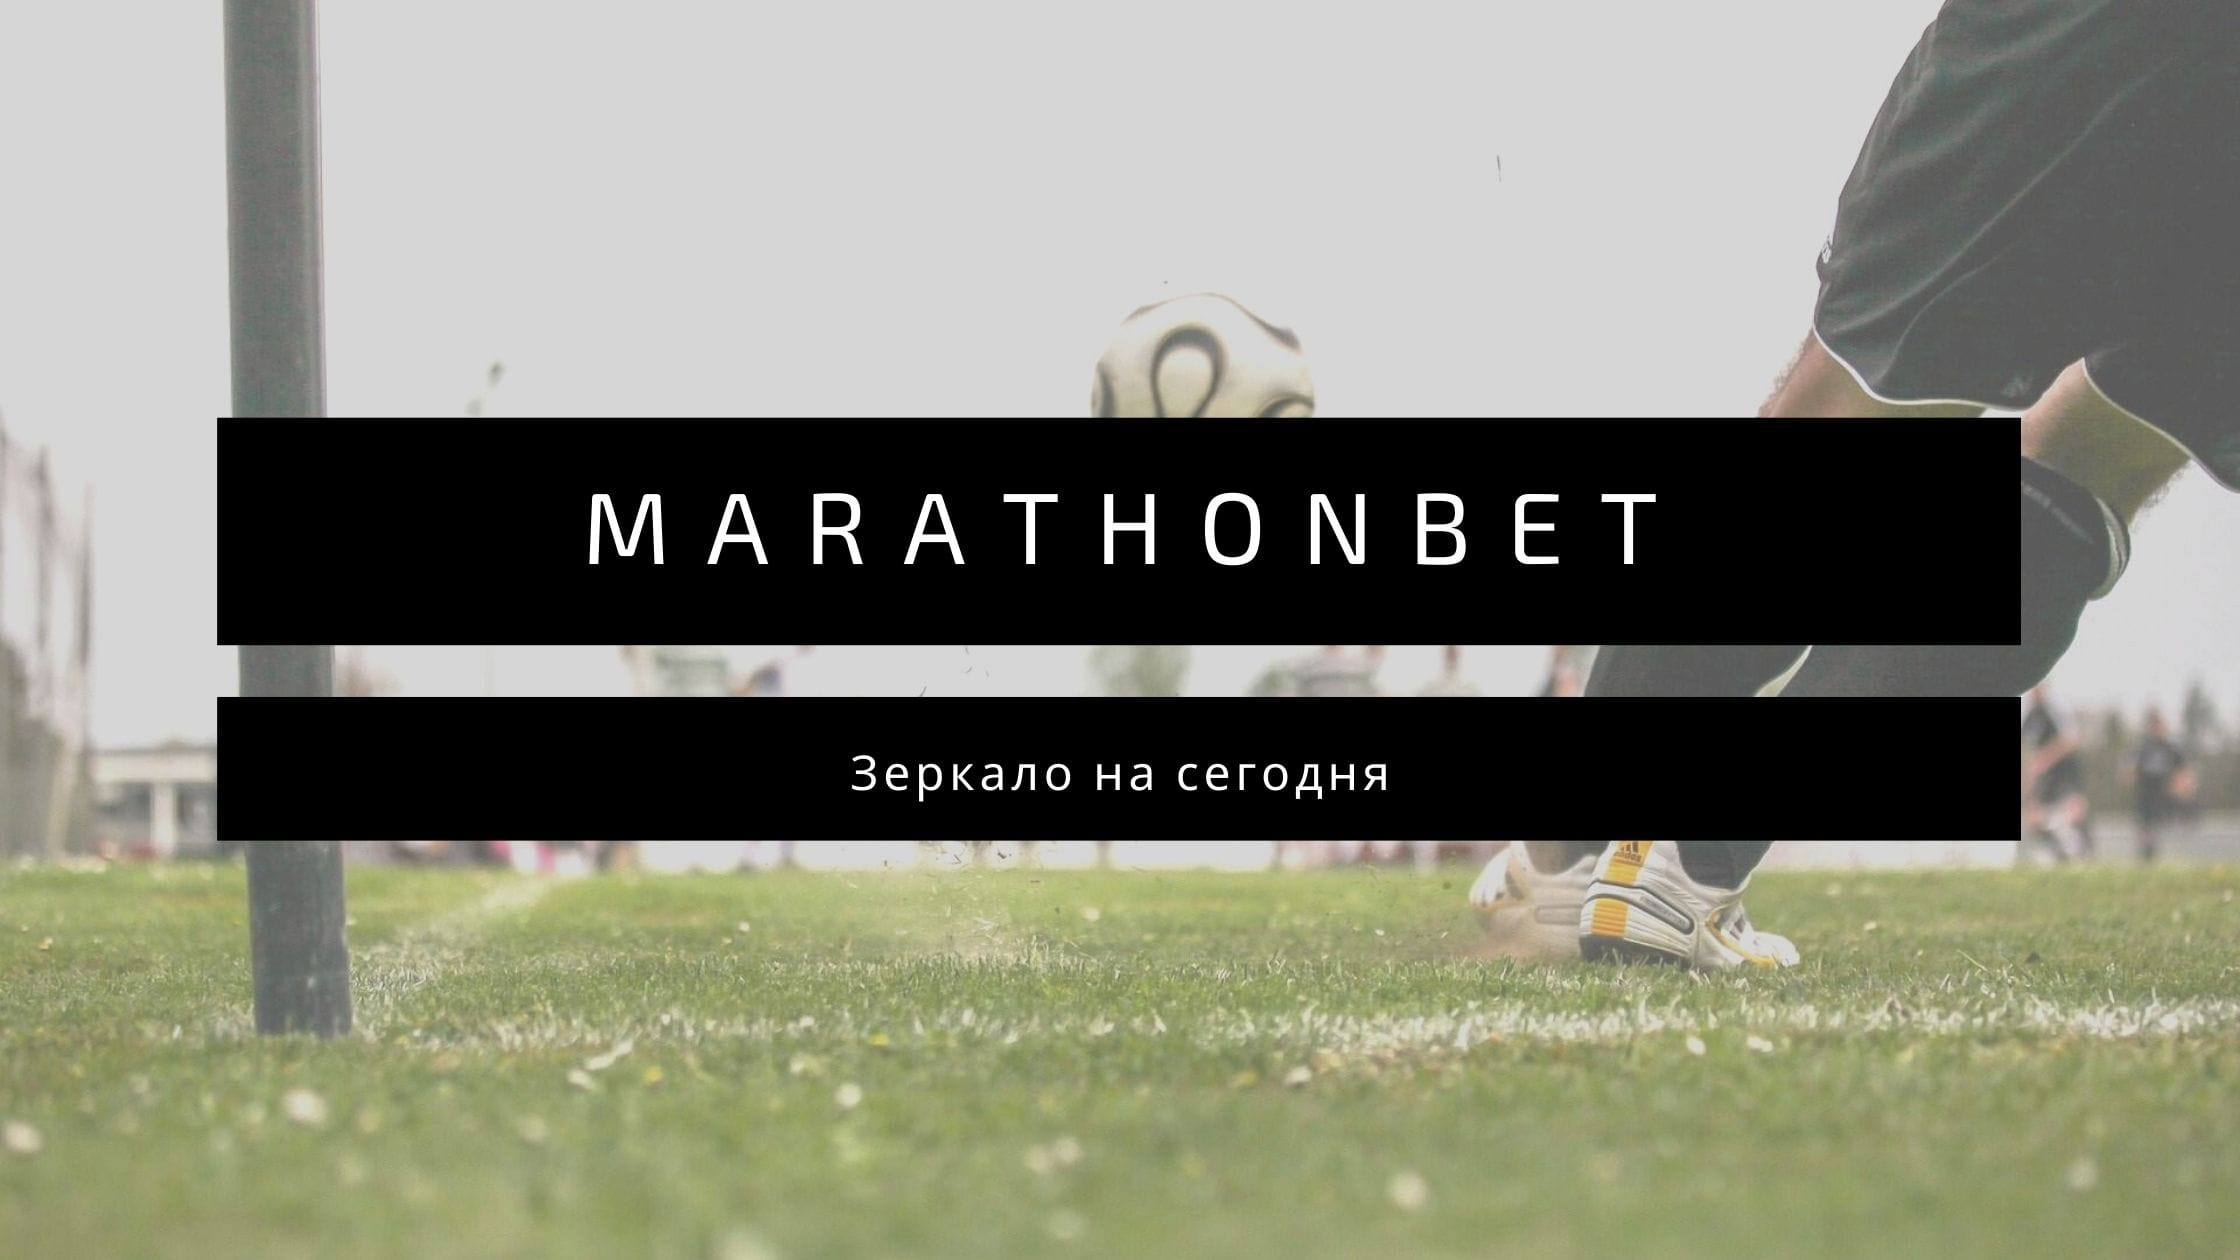 https://rfpl.tv/wp-content/uploads/2020/10/MarathonBet-min-150x150.jpg